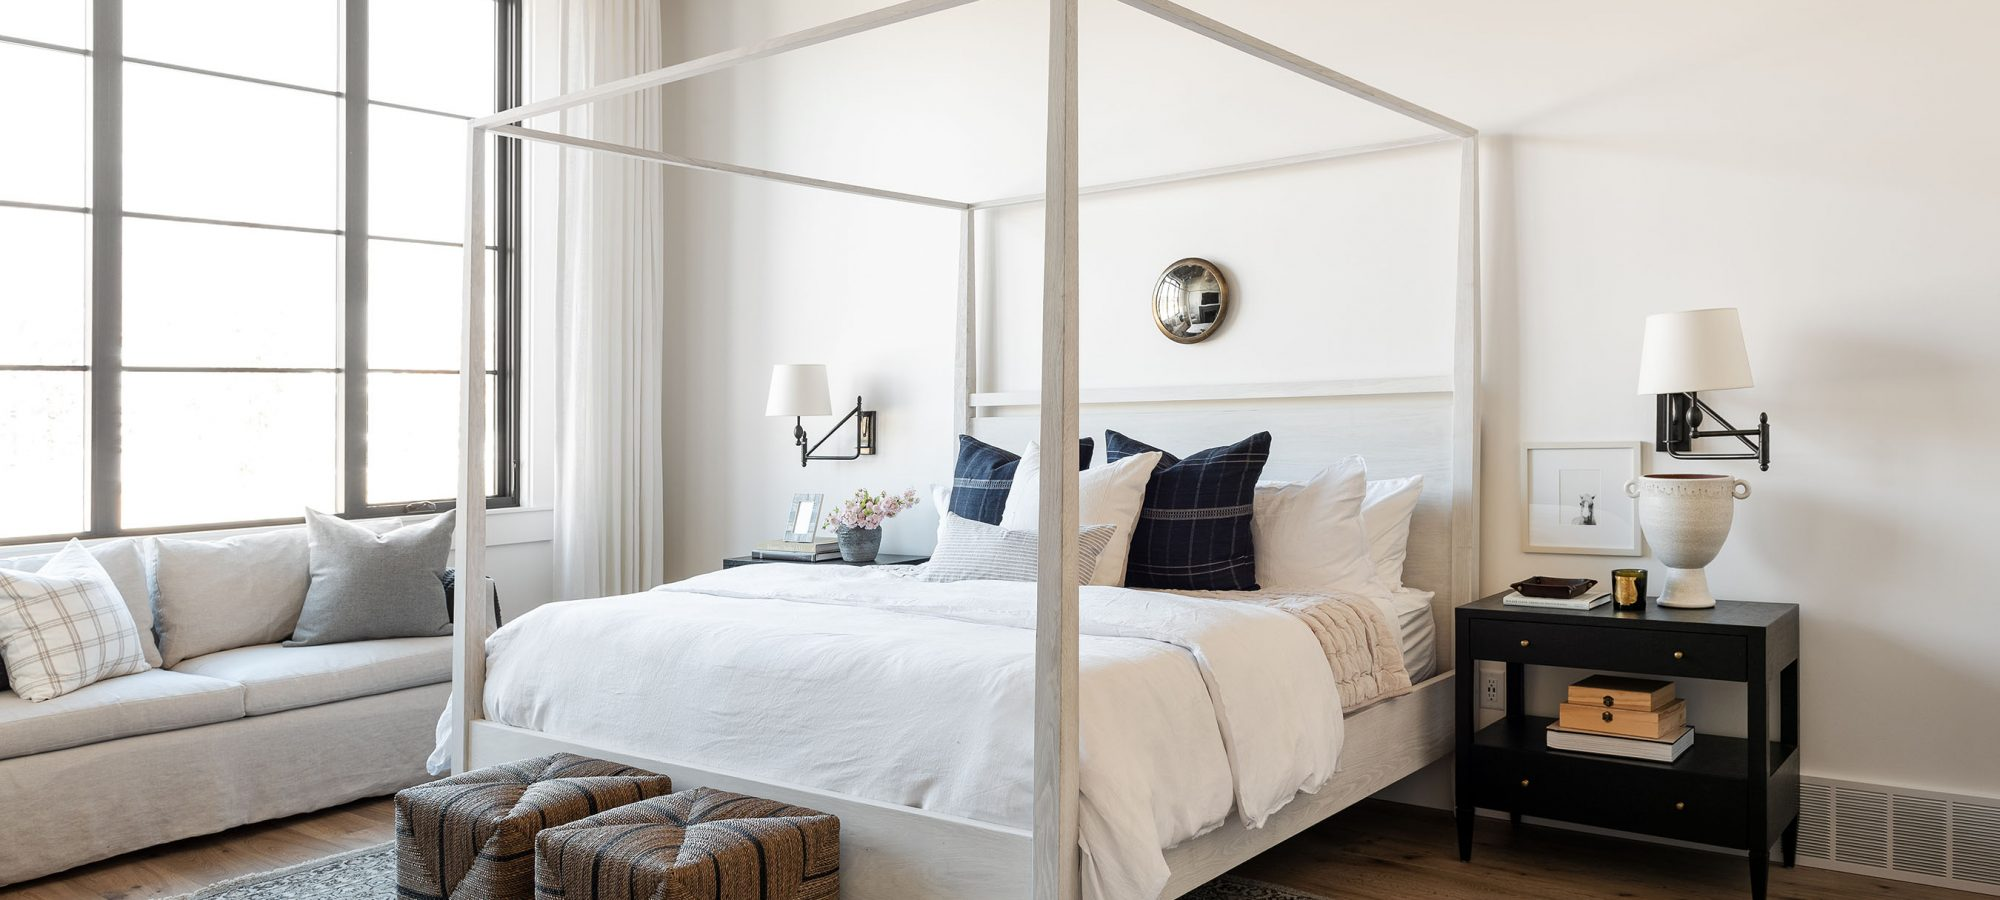 The Sunset House: The Bedrooms